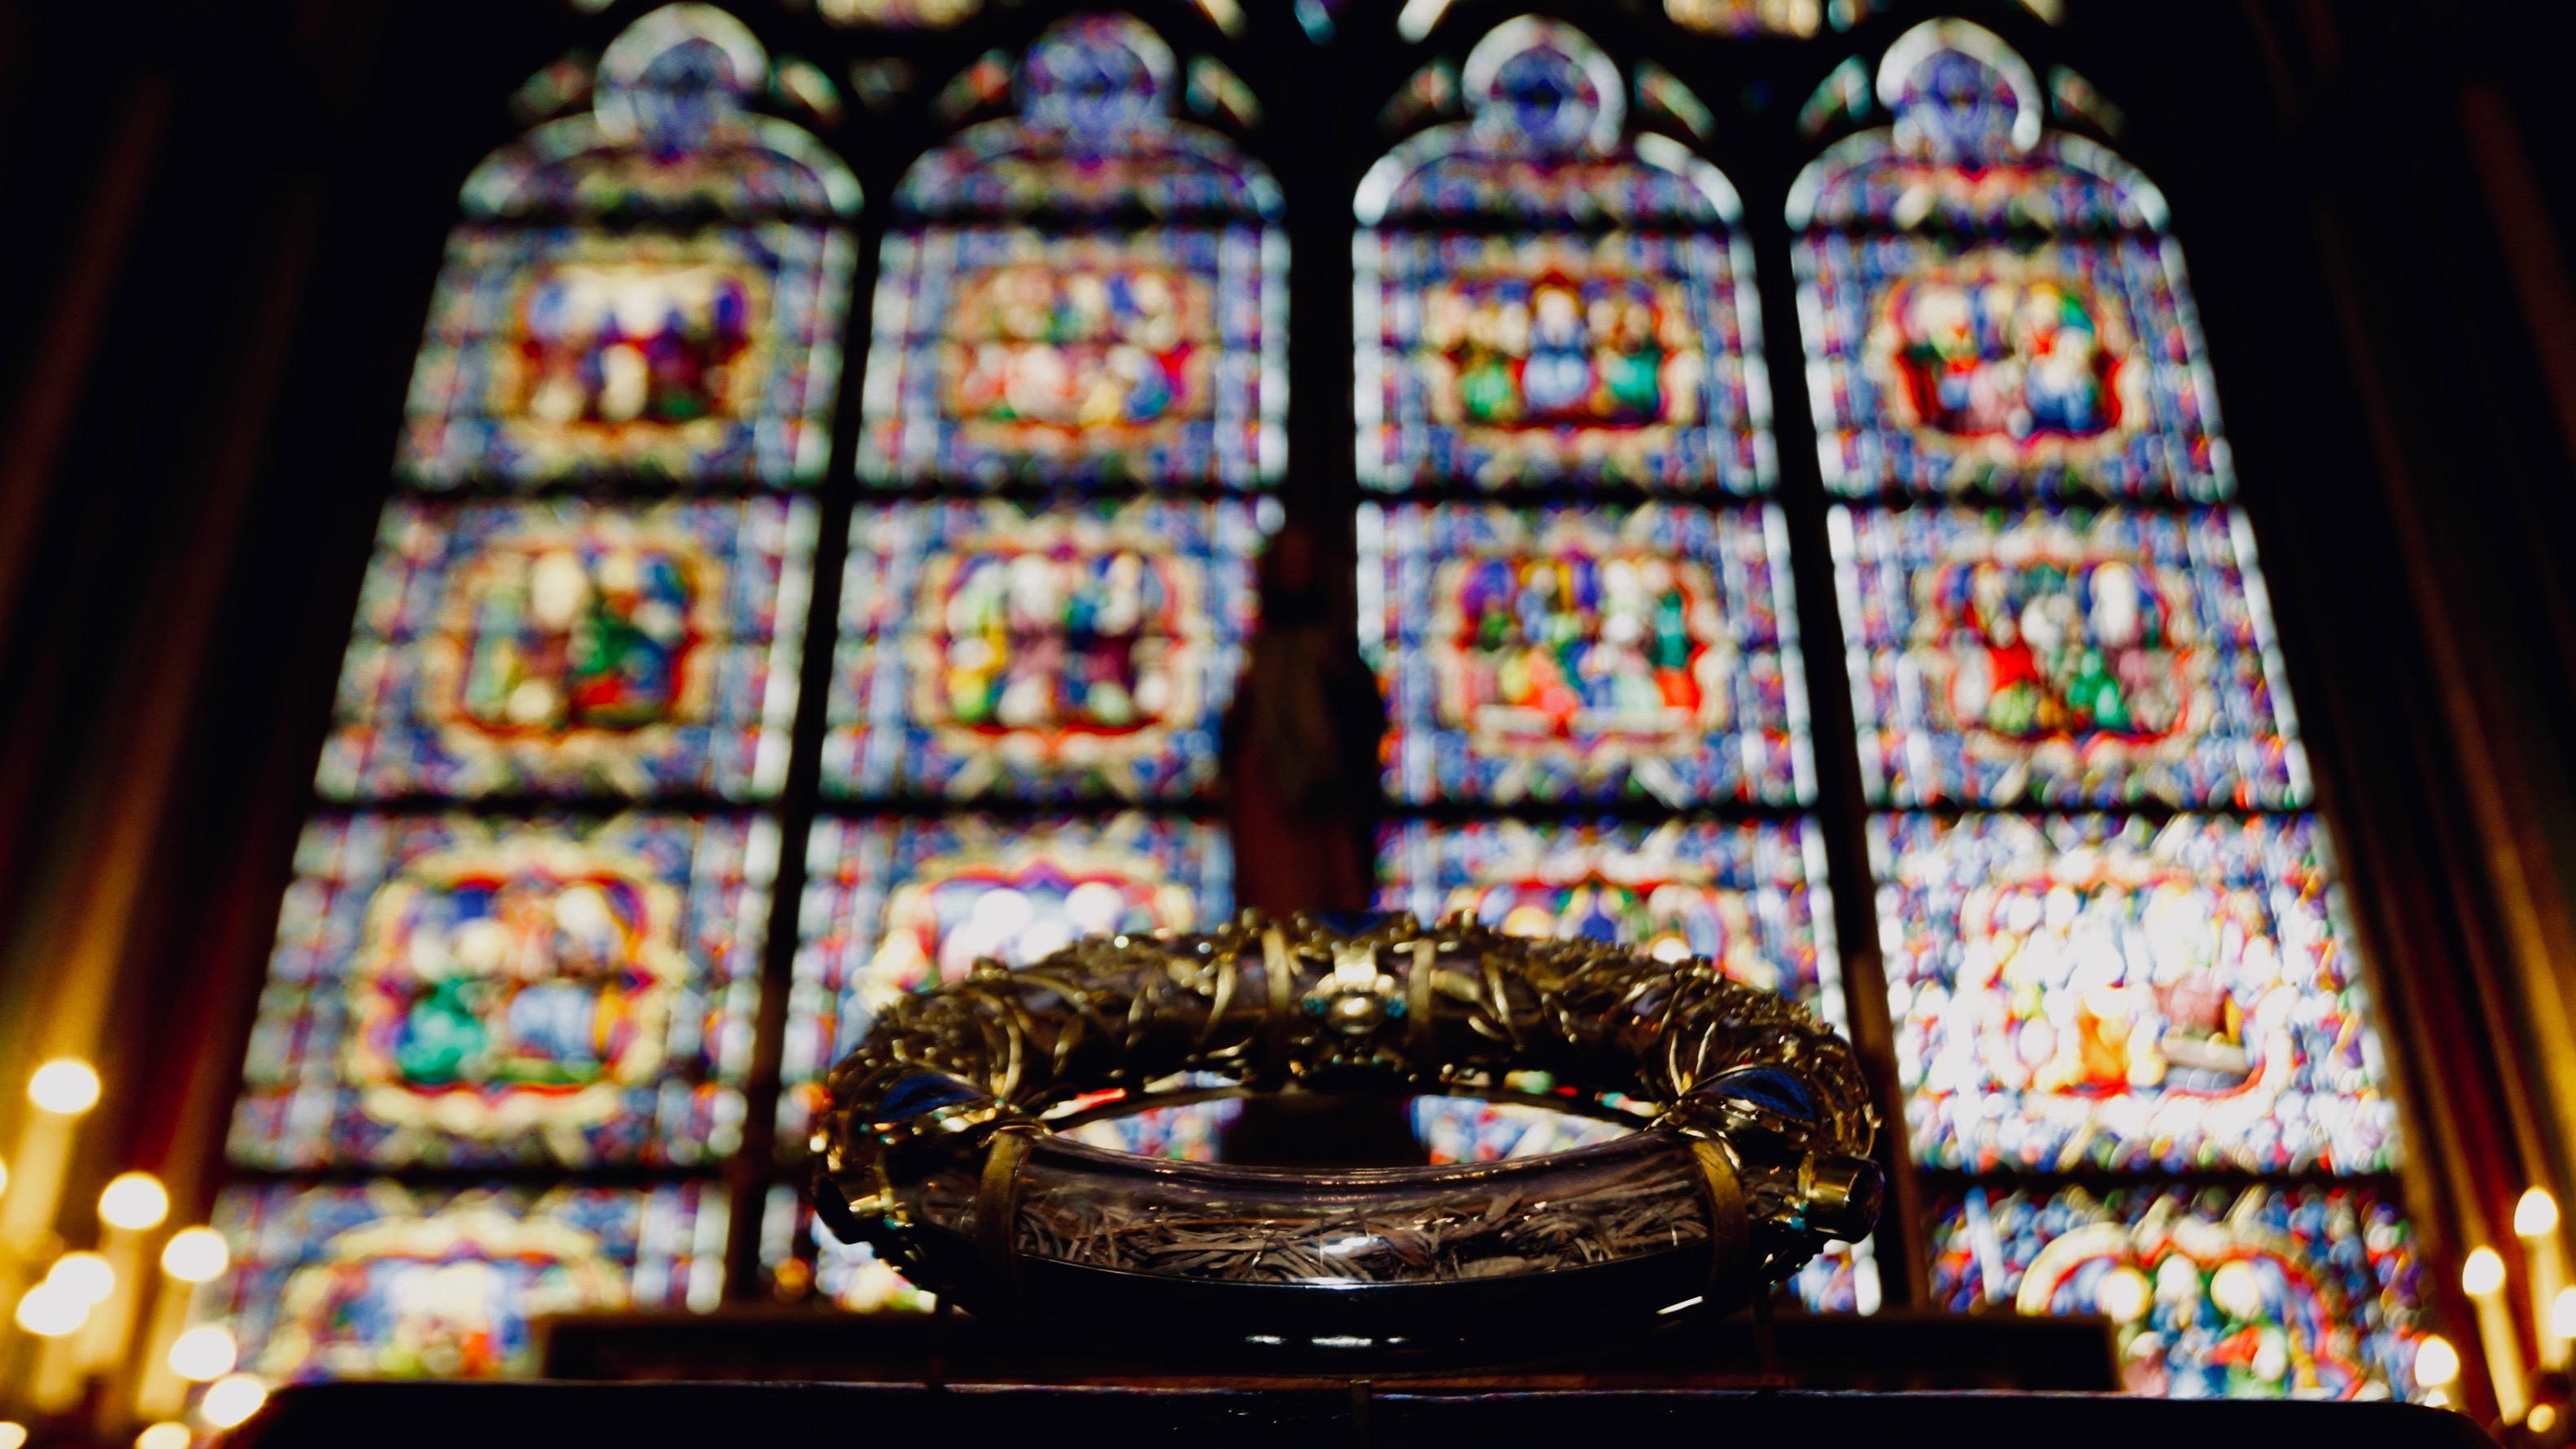 The Holy Crown of Thorns on display at Notre Dame Cathedral in 2014.